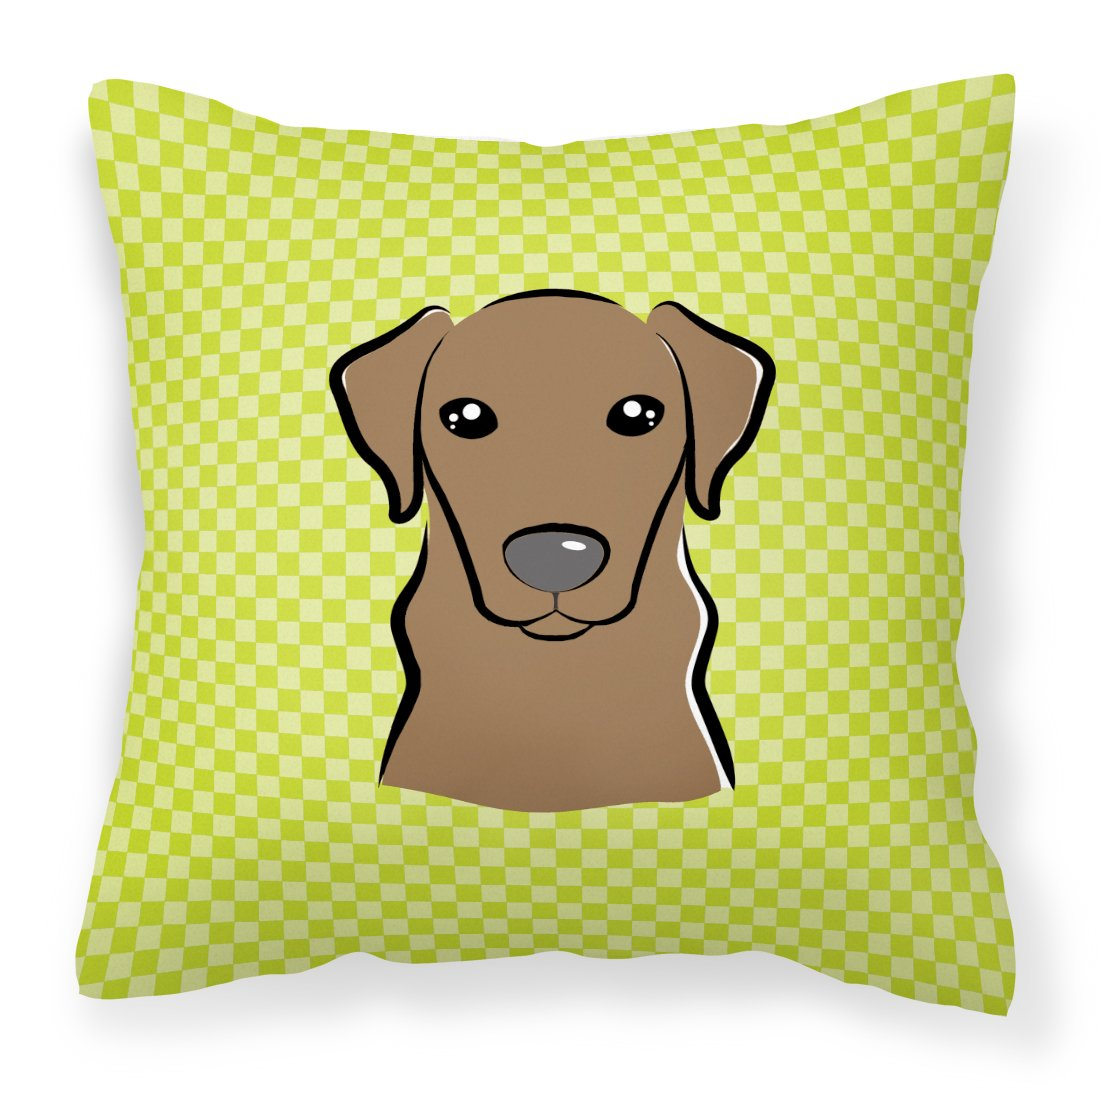 Buy this Checkerboard Lime Green Chocolate Labrador Canvas Fabric Decorative Pillow